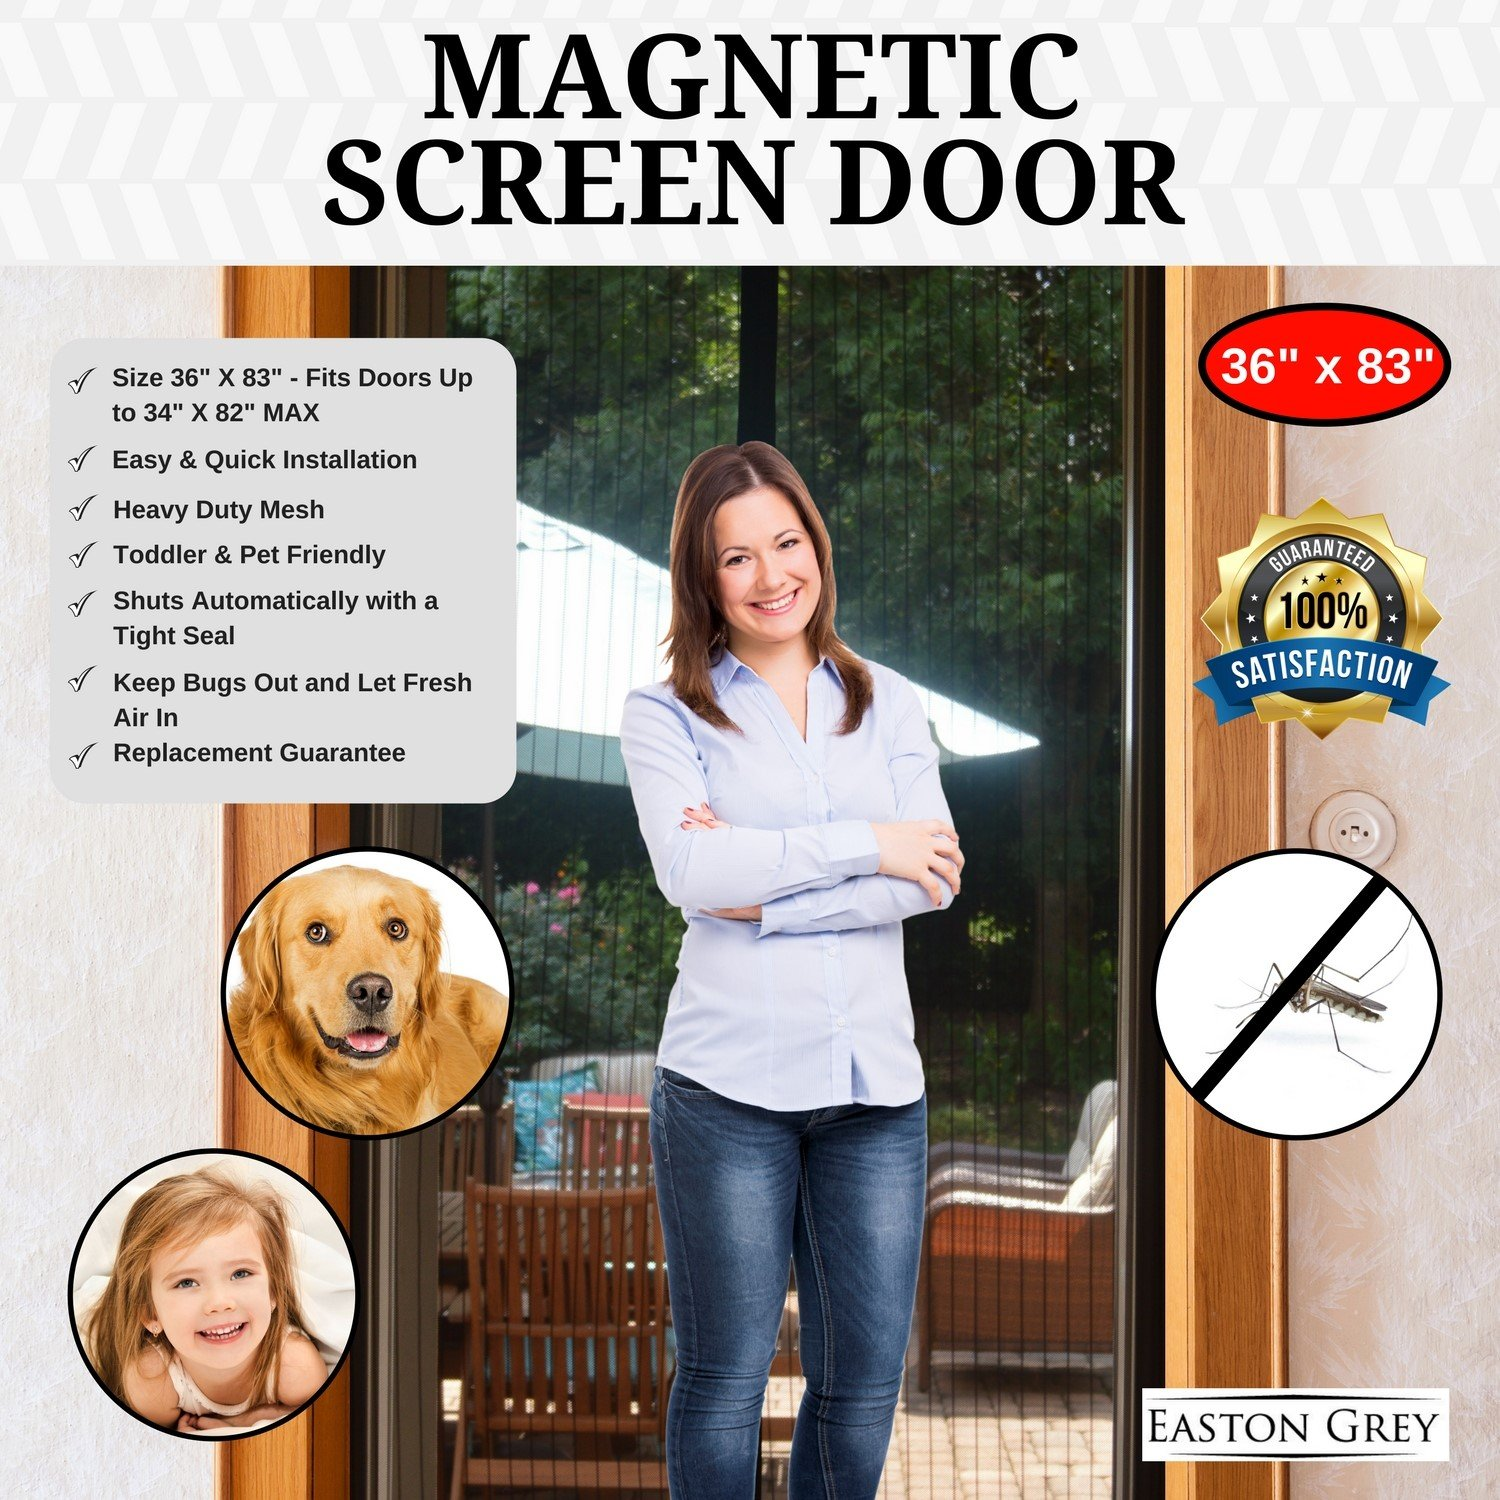 Details about Magnetic Screen Door Bug Insect Fly Sliding Glass Patio  Removable Apartment Mesh